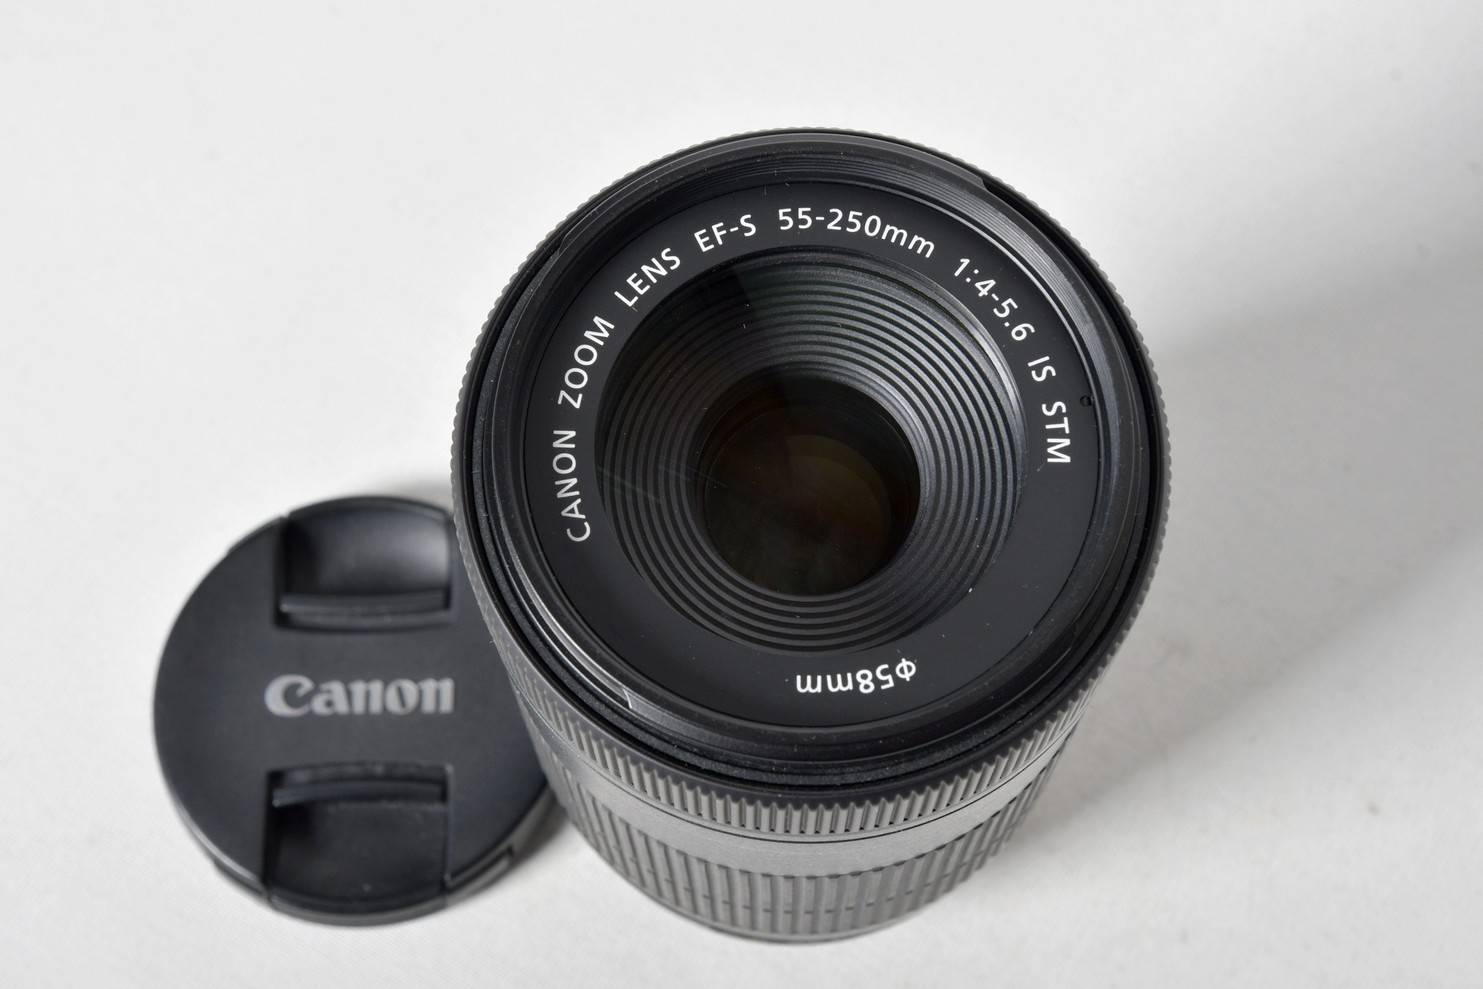 Объектив CANON EF-S 55-250/4-5.6 IS STM (состояние 5)